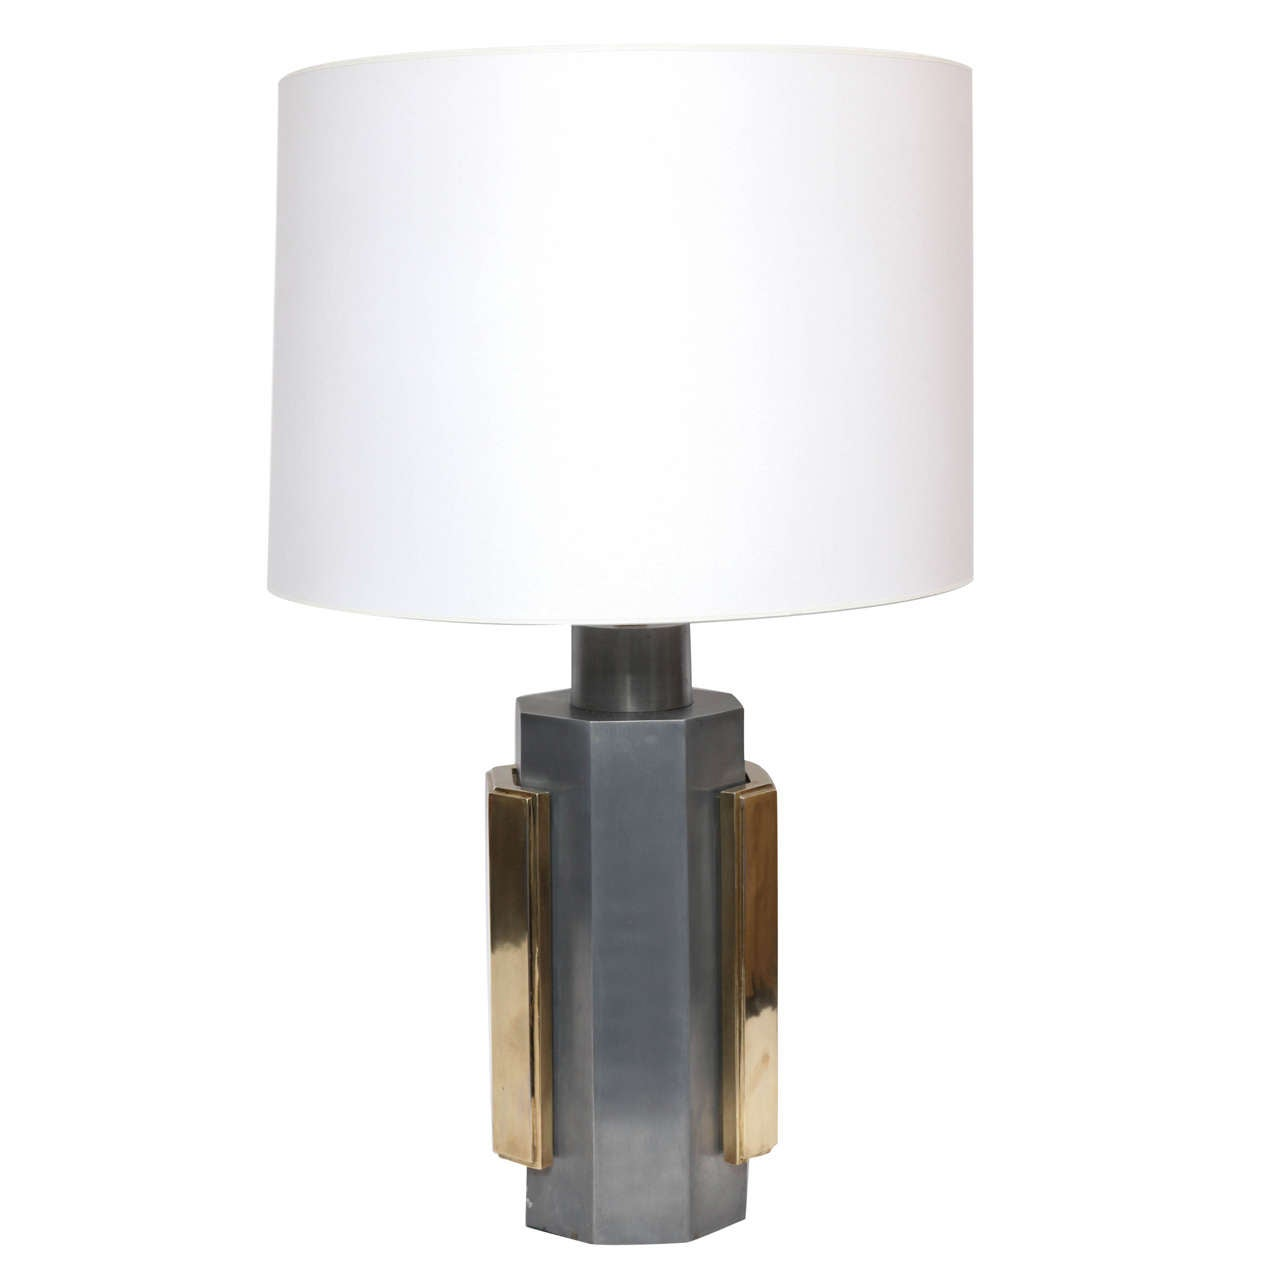 1970s Architectural Modernist Brass and Steel Table Lamp